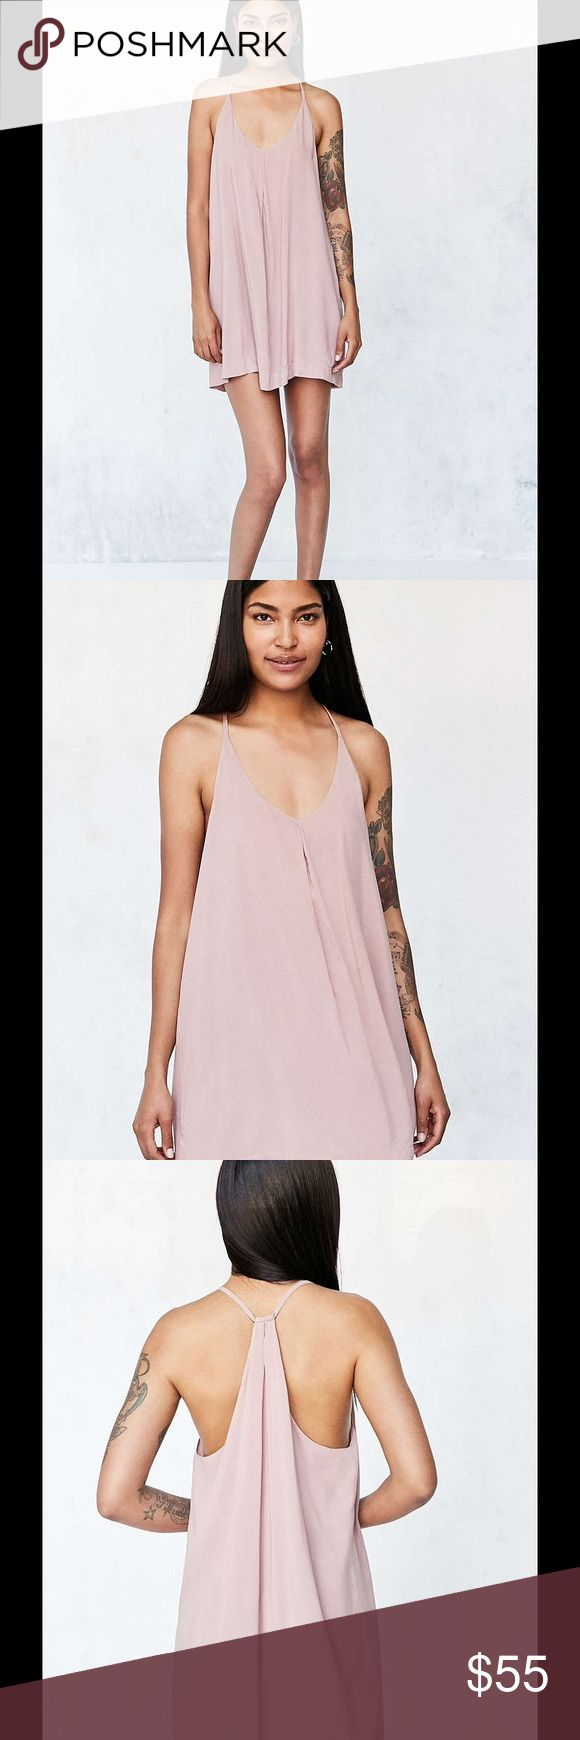 "Urban Outfitters Slip Dress NOT FOR SALE!! Do not buy this listing.  Download the Dote Shopping app and get this dress for $55 plus free shipping using the promo code ""PDIN."" Urban Outfitters Dresses"